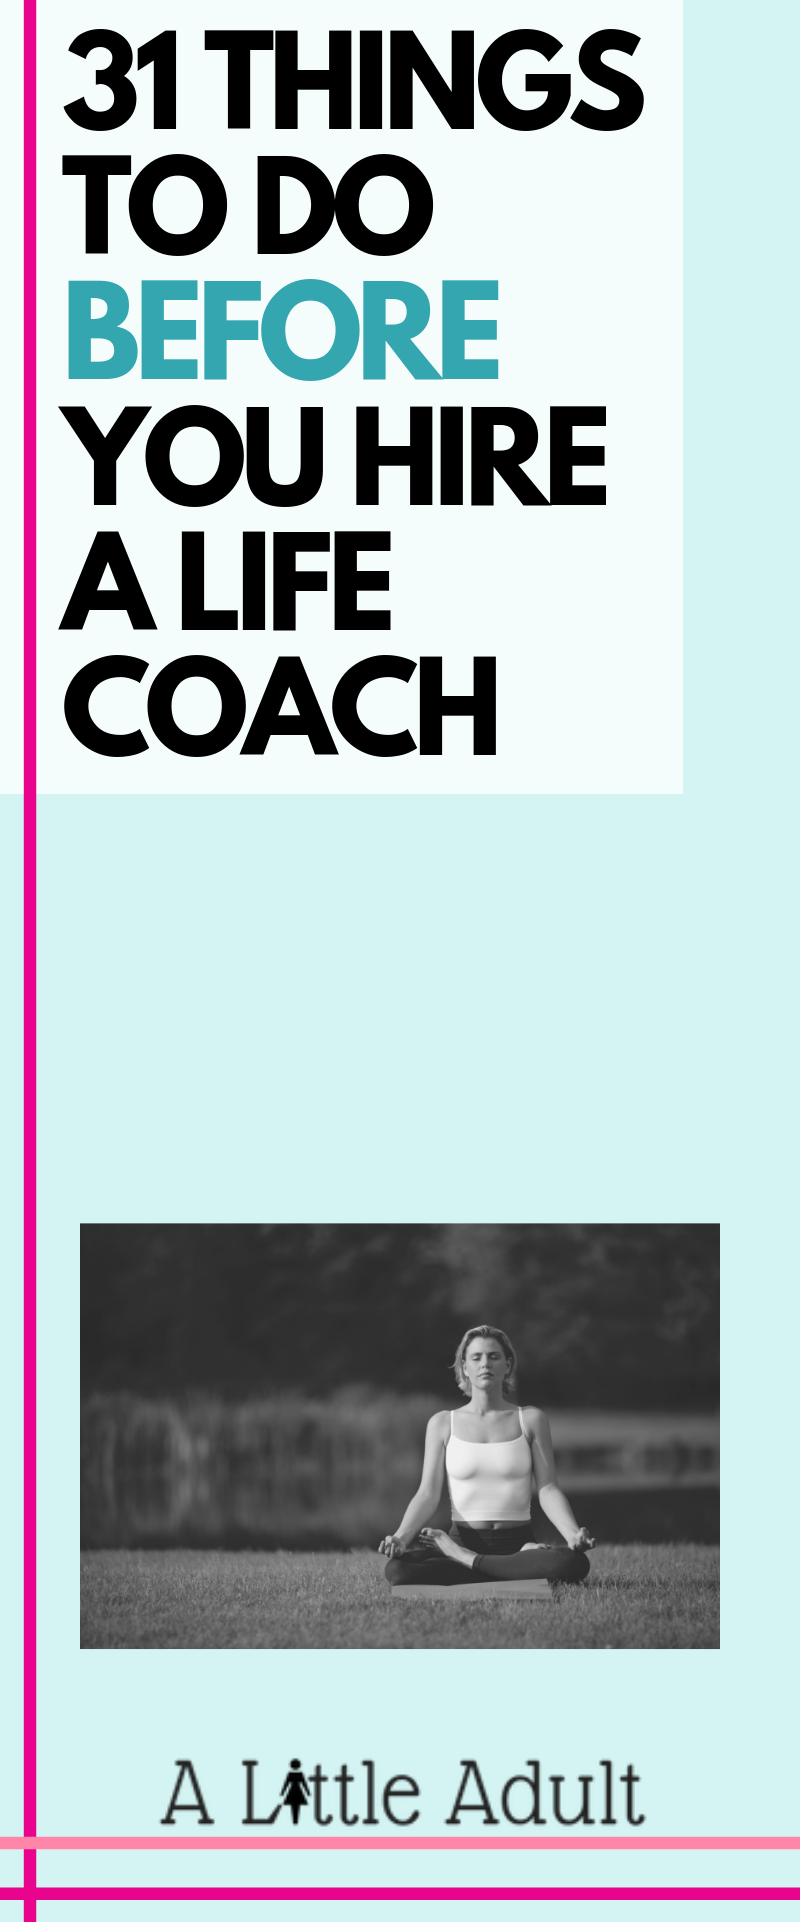 31 Things To Do Before You Hire a Life Coach - Pinterest